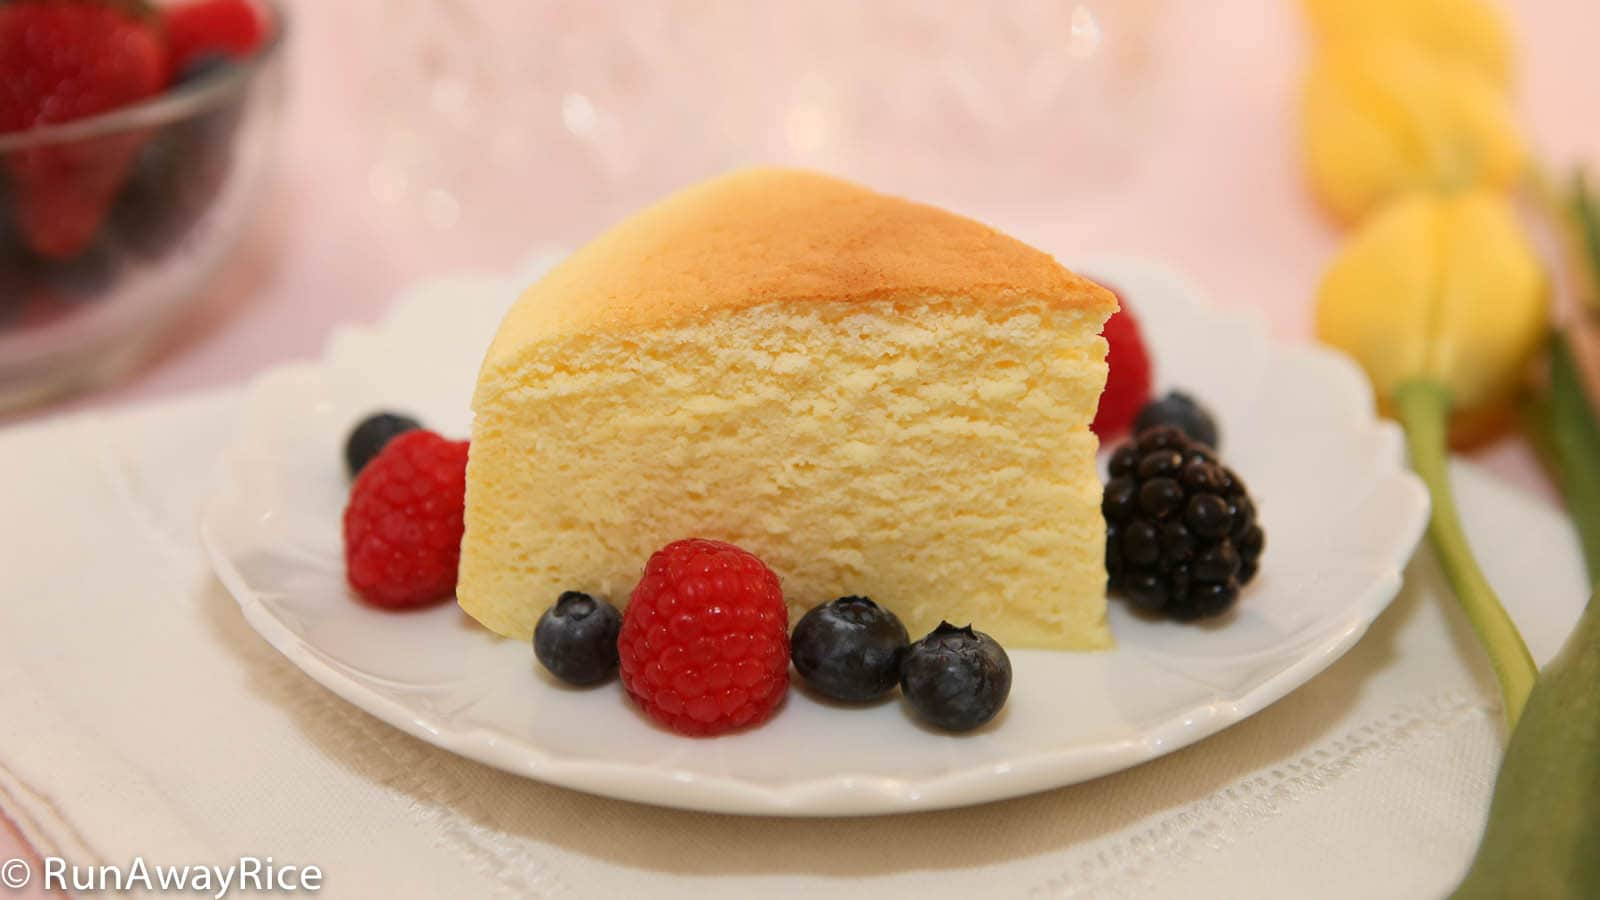 Japanese Cream Cheese Sponge Cake Recipe